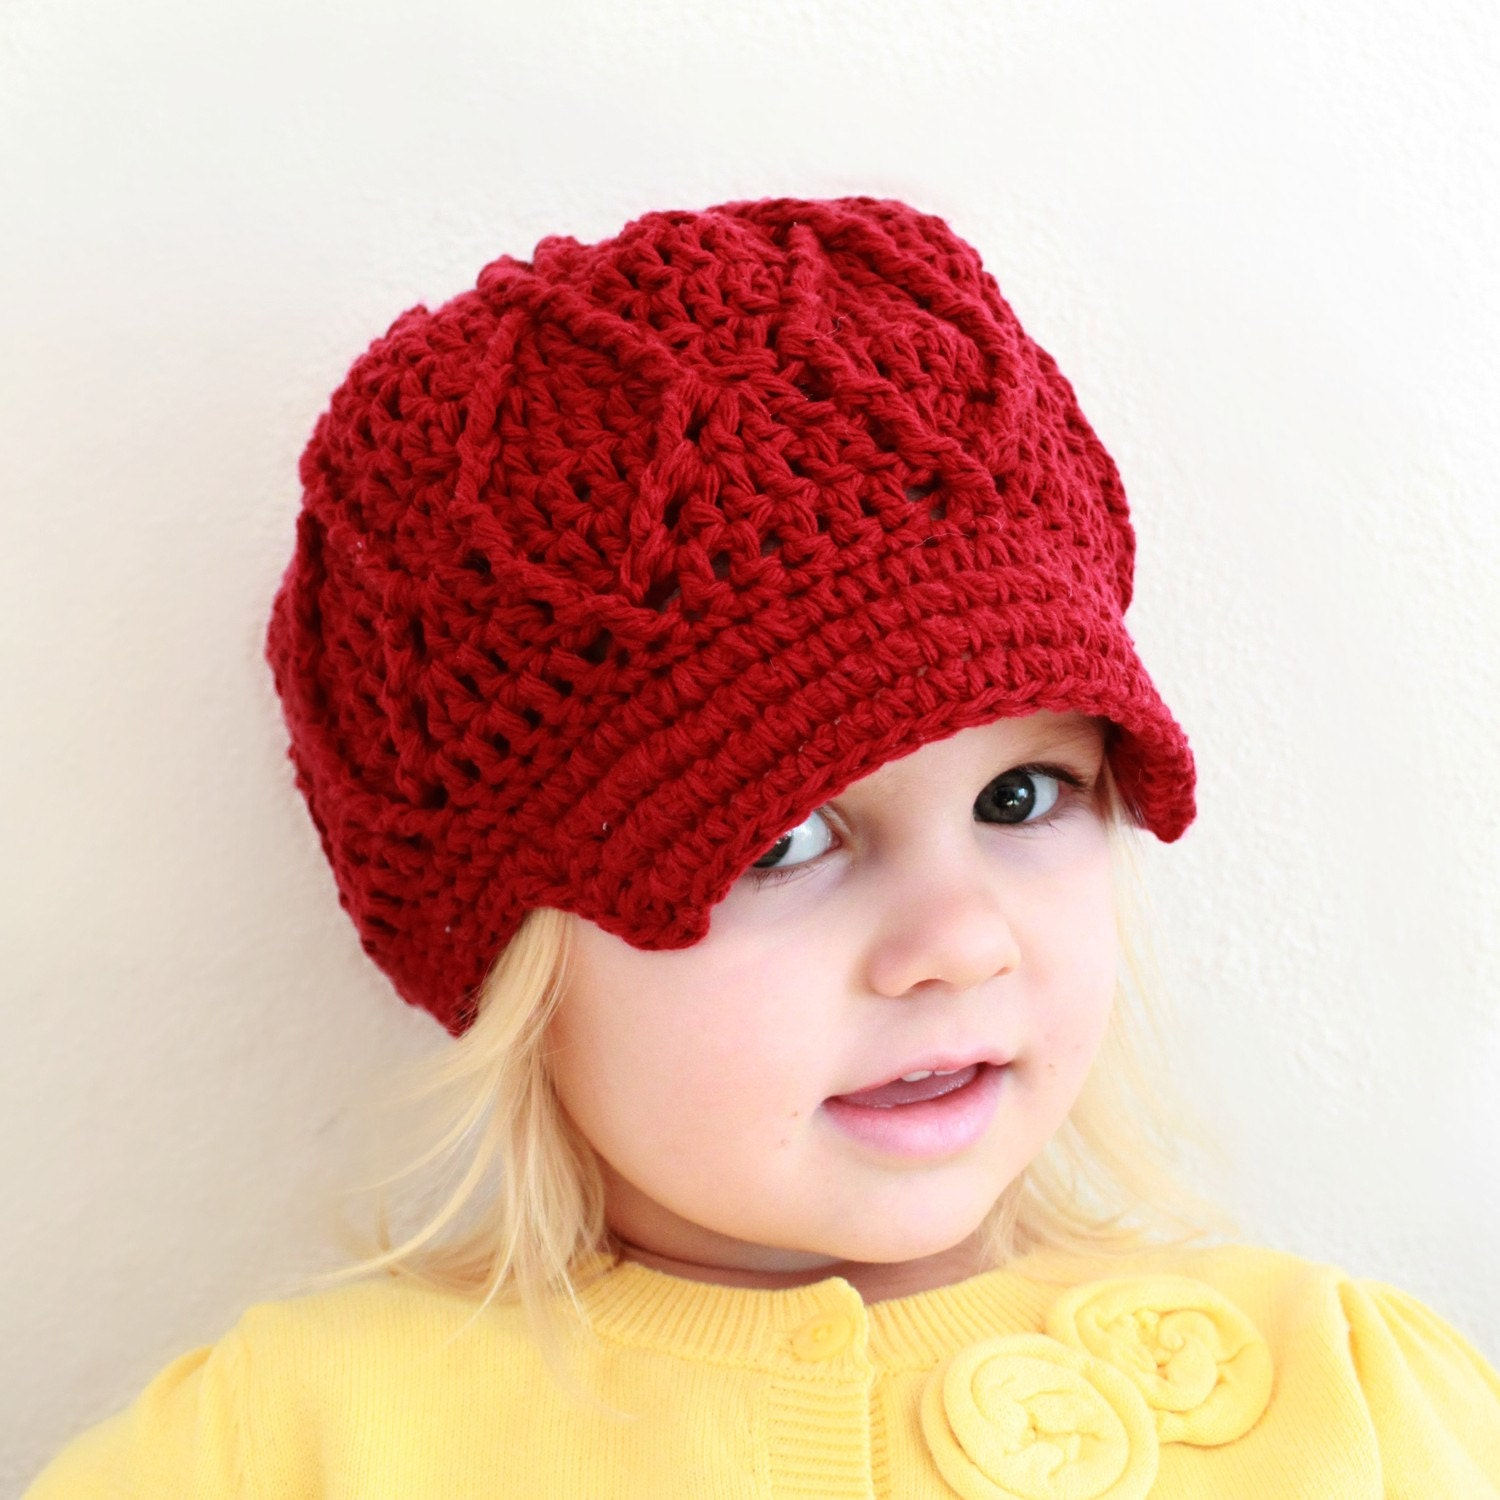 Free Crochet Hat Patterns To Download : Instant Download Crochet Pattern Maggie Newsboy Hat